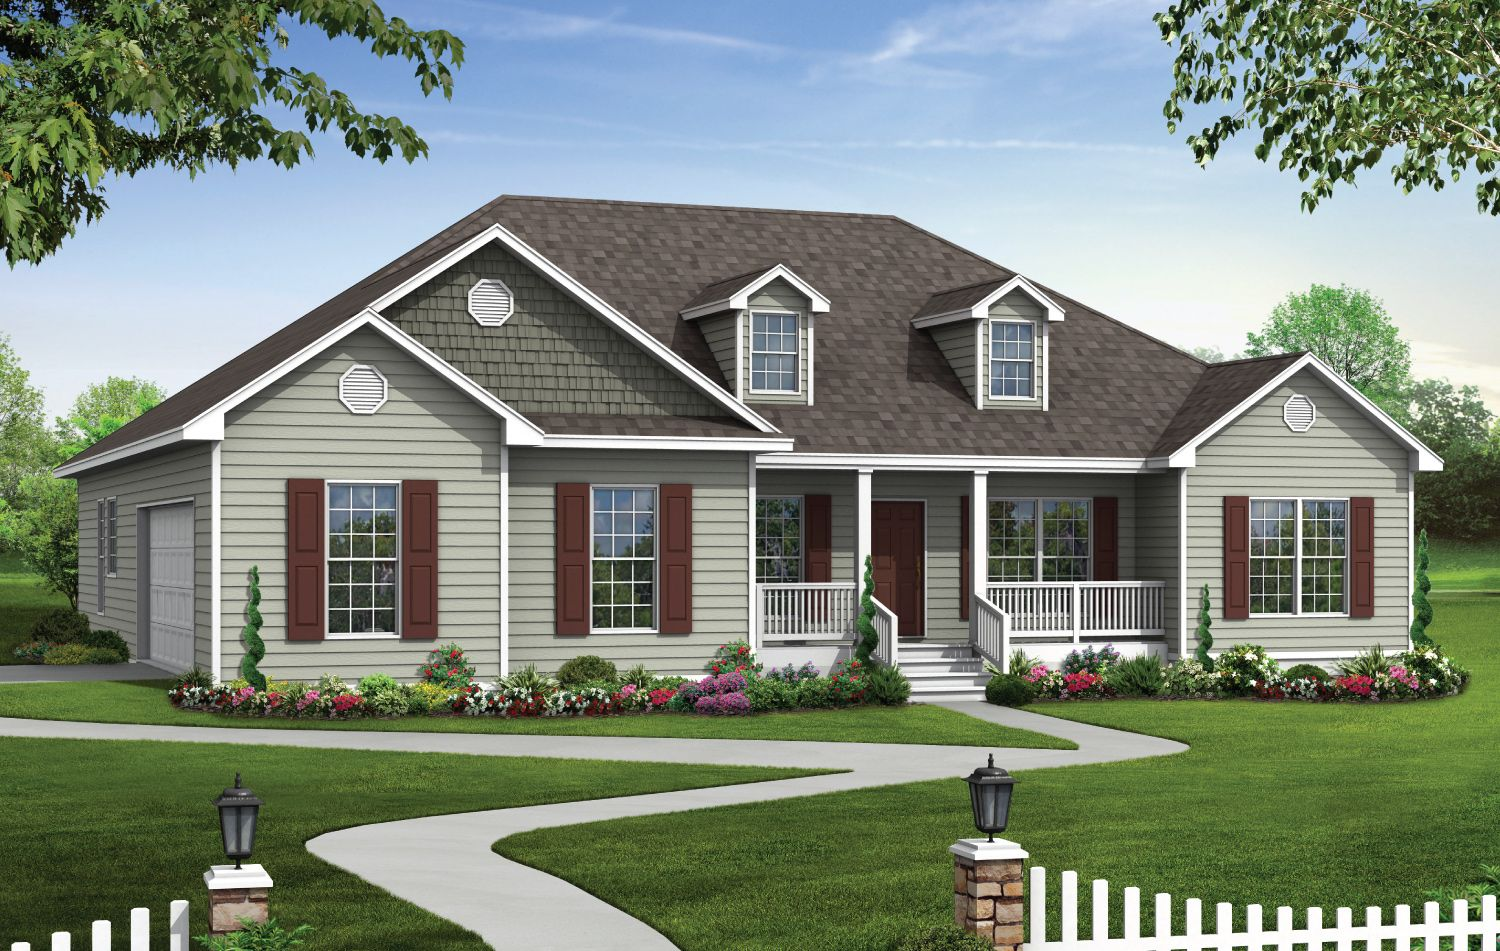 America 39 s home place build on your lot tallahassee for Americas best home place